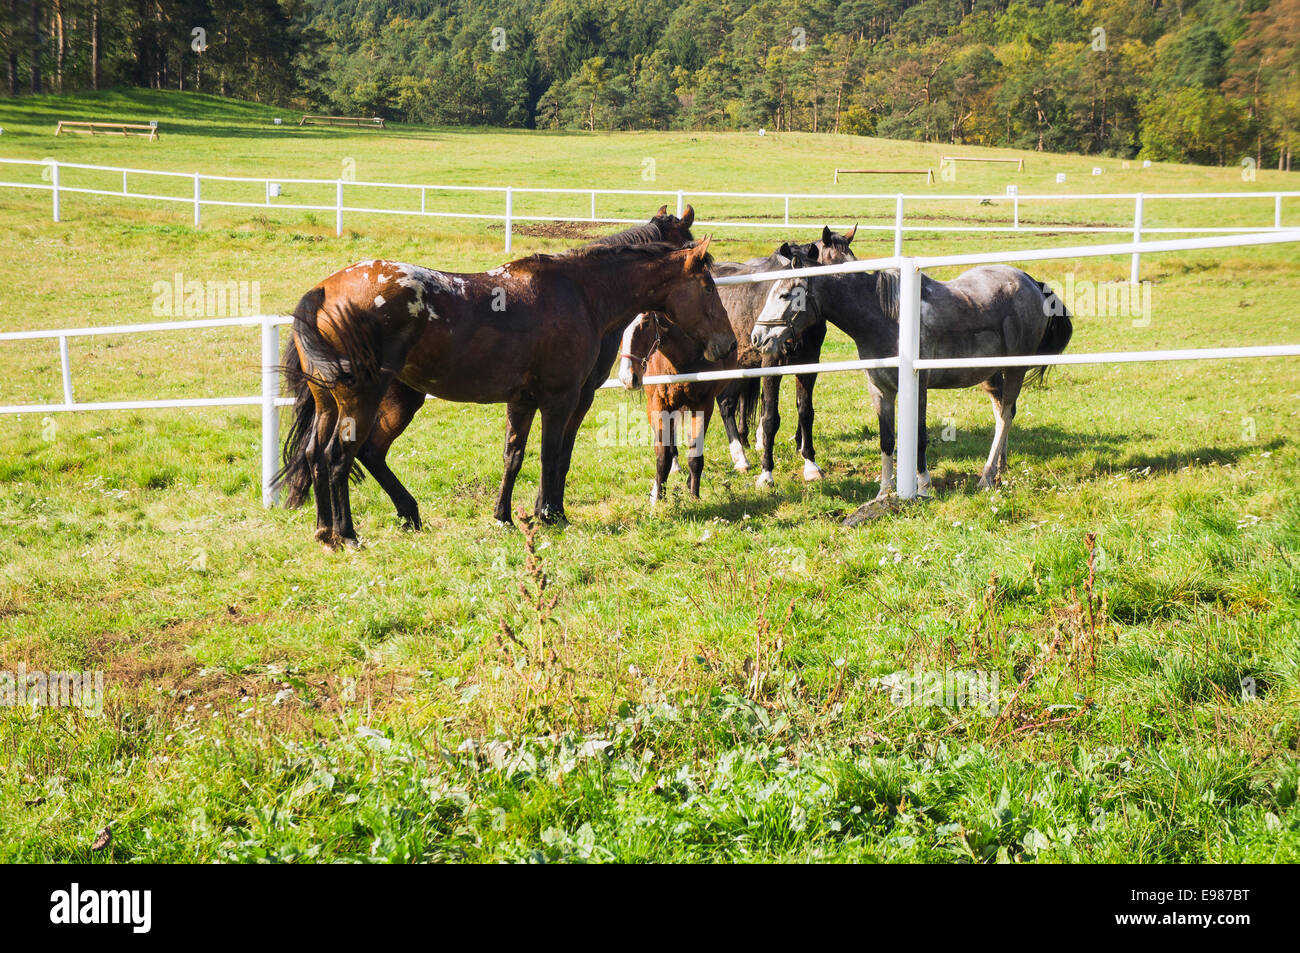 The Appaloosa Two Horses At Left A Horse Breed Best Known For Its Stock Photo Alamy